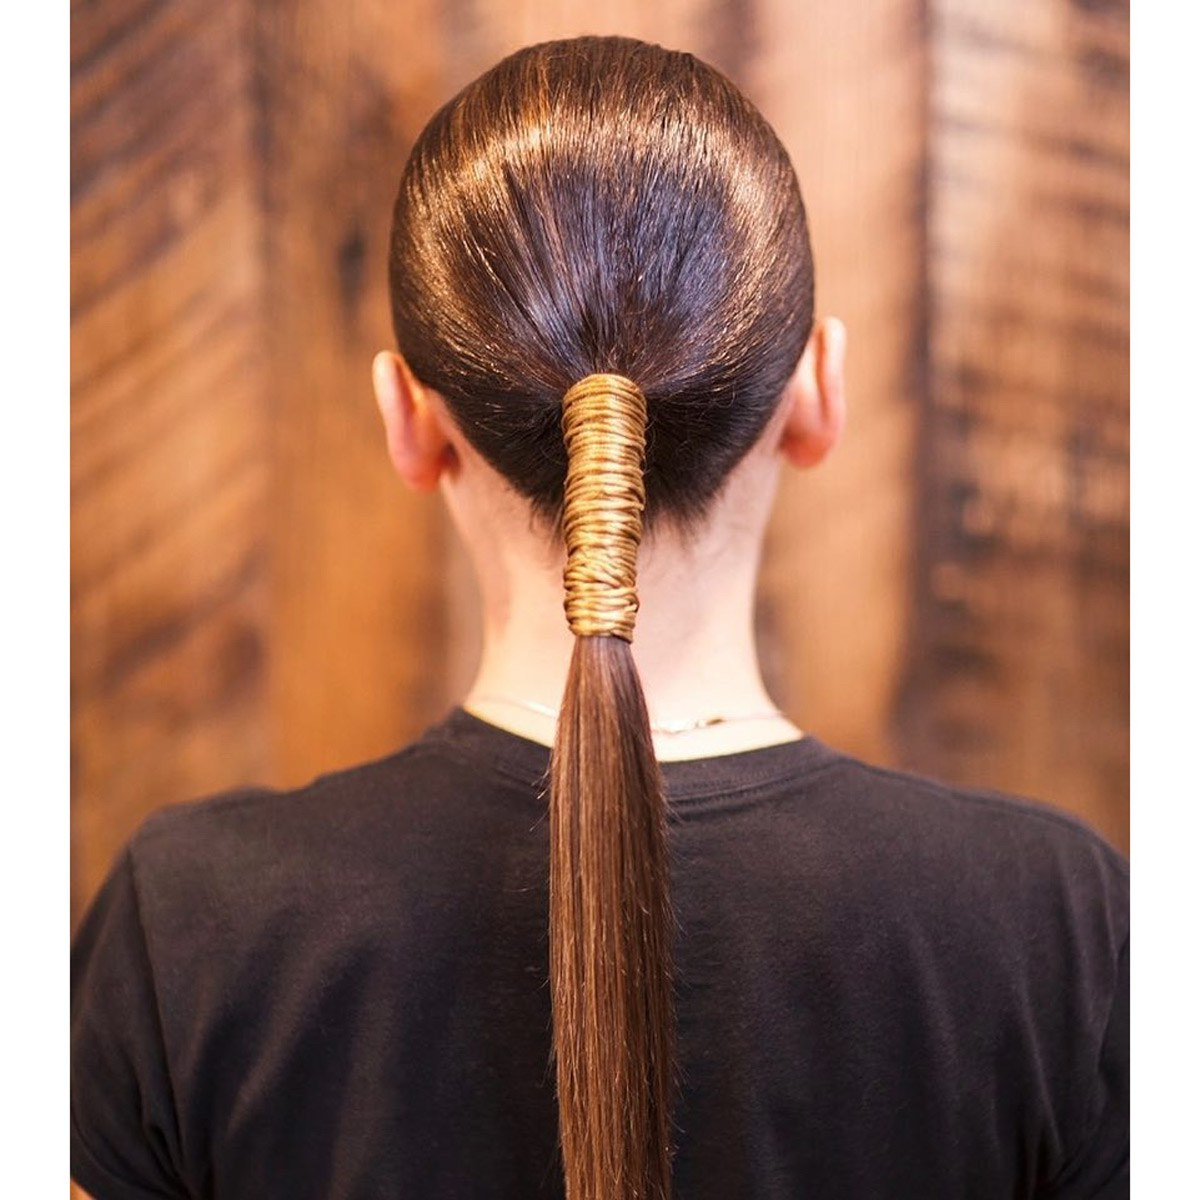 37 Cool Ponytail Hairstyles To Try In 2019 (Gallery 1 of 20)